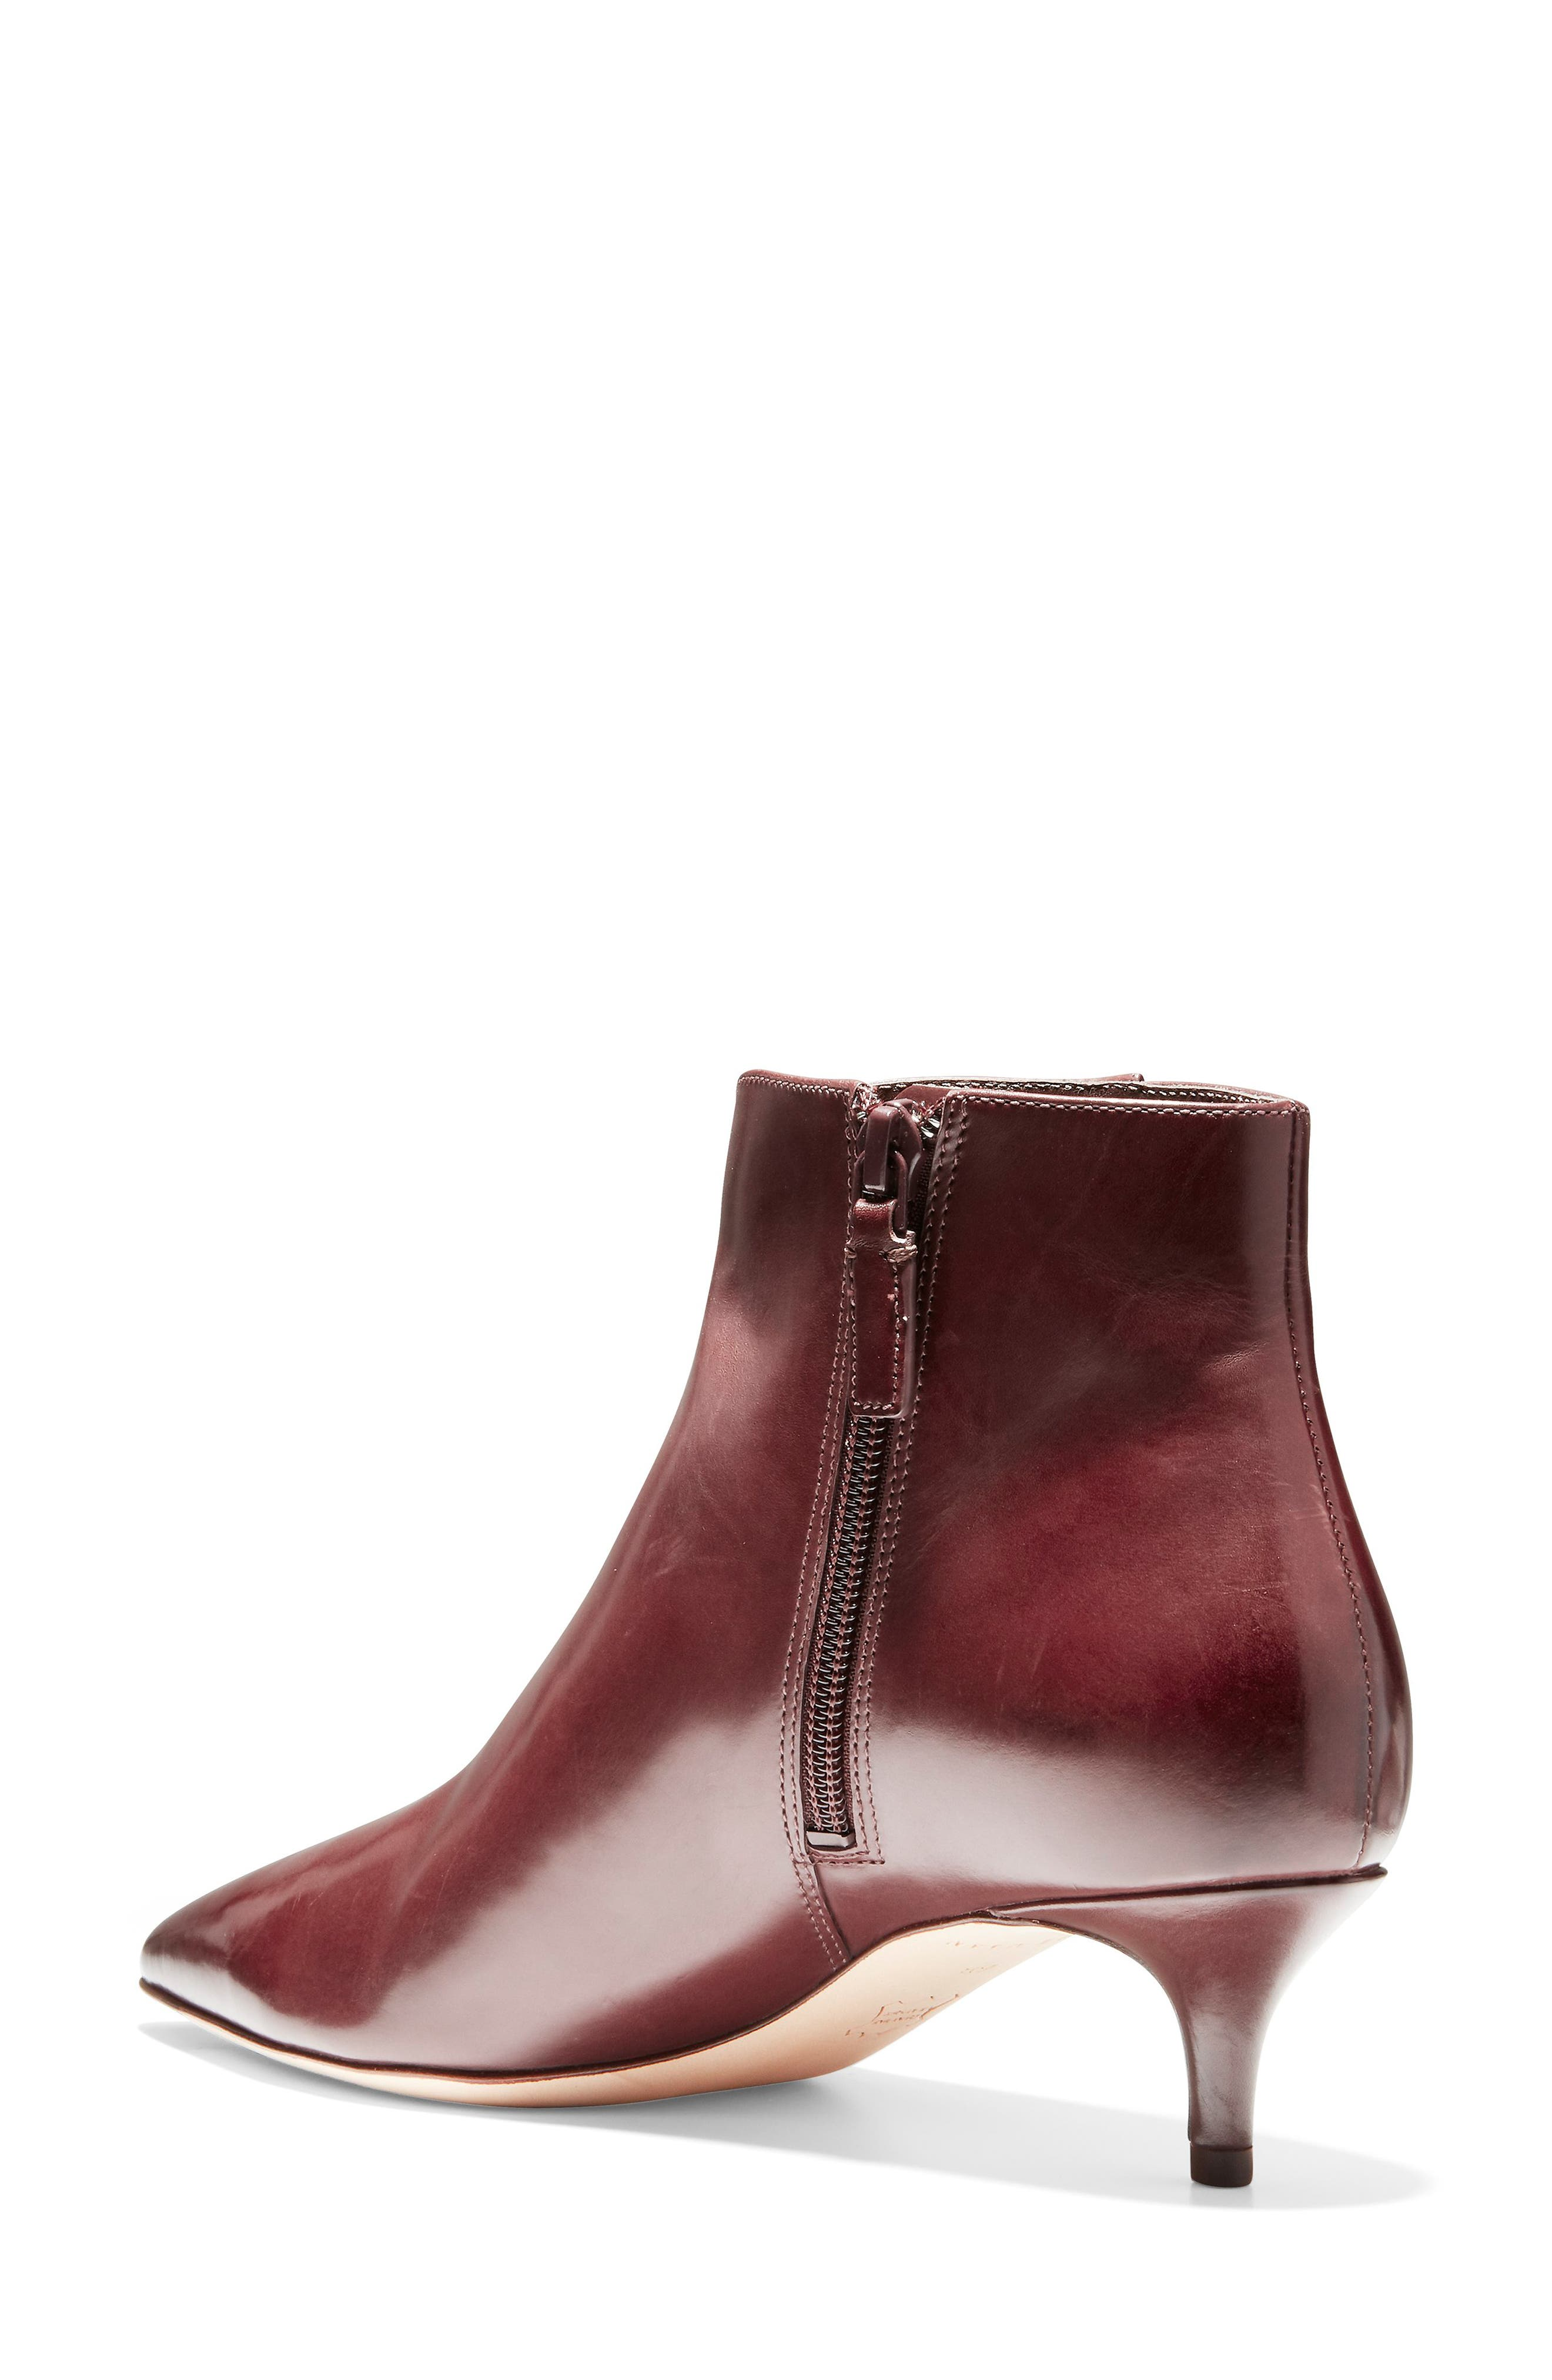 Vesta Bootie,                             Alternate thumbnail 2, color,                             CORDOVAN LEATHER